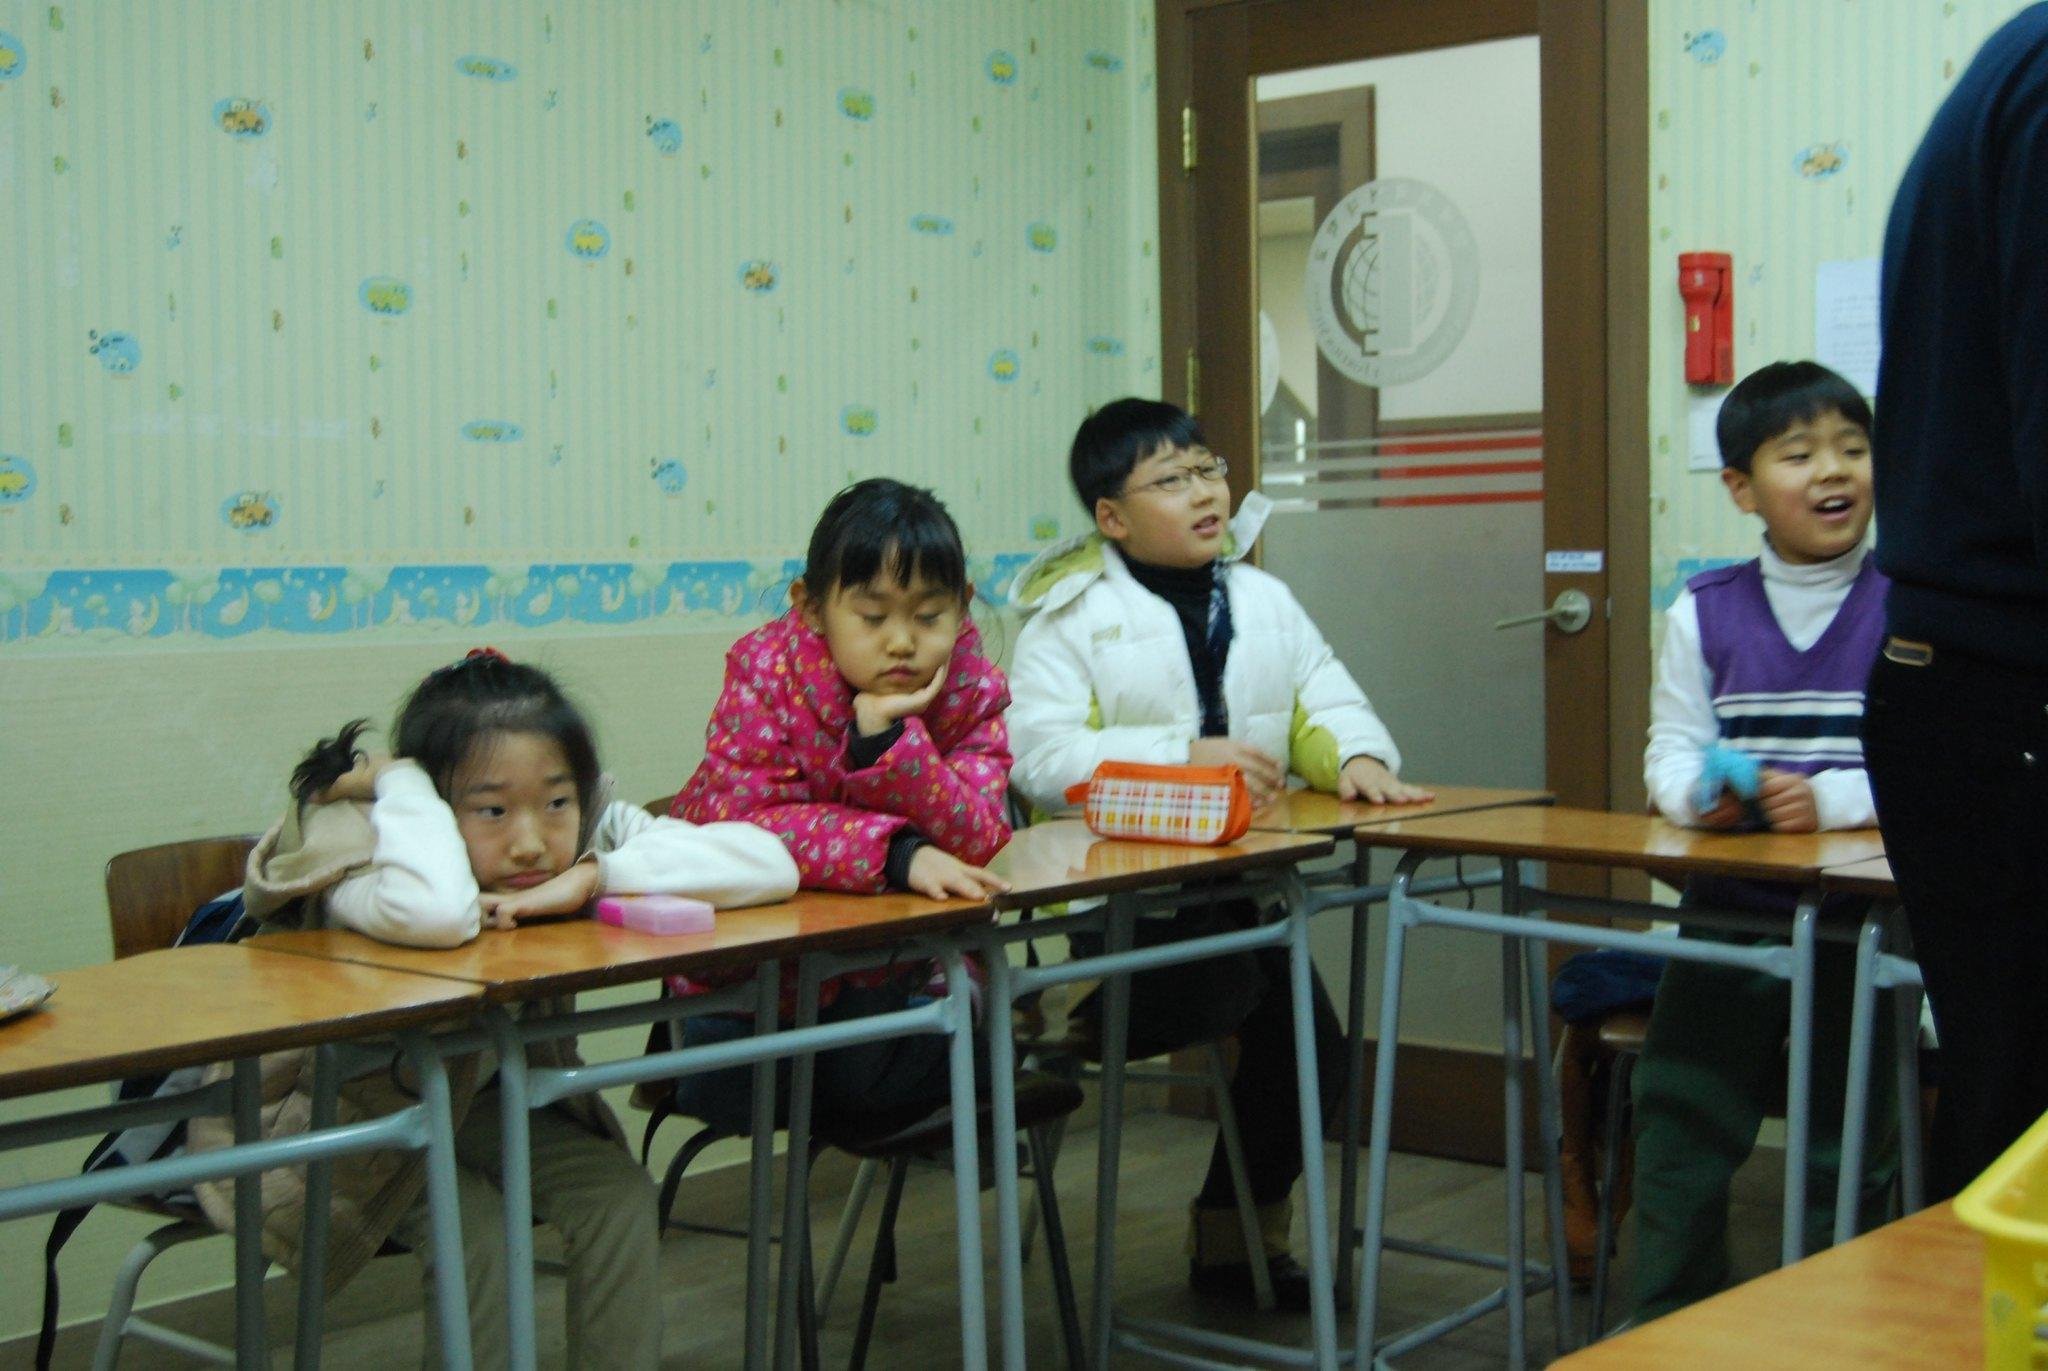 How to Teach English in South Korea – The Land of the Morning Calm